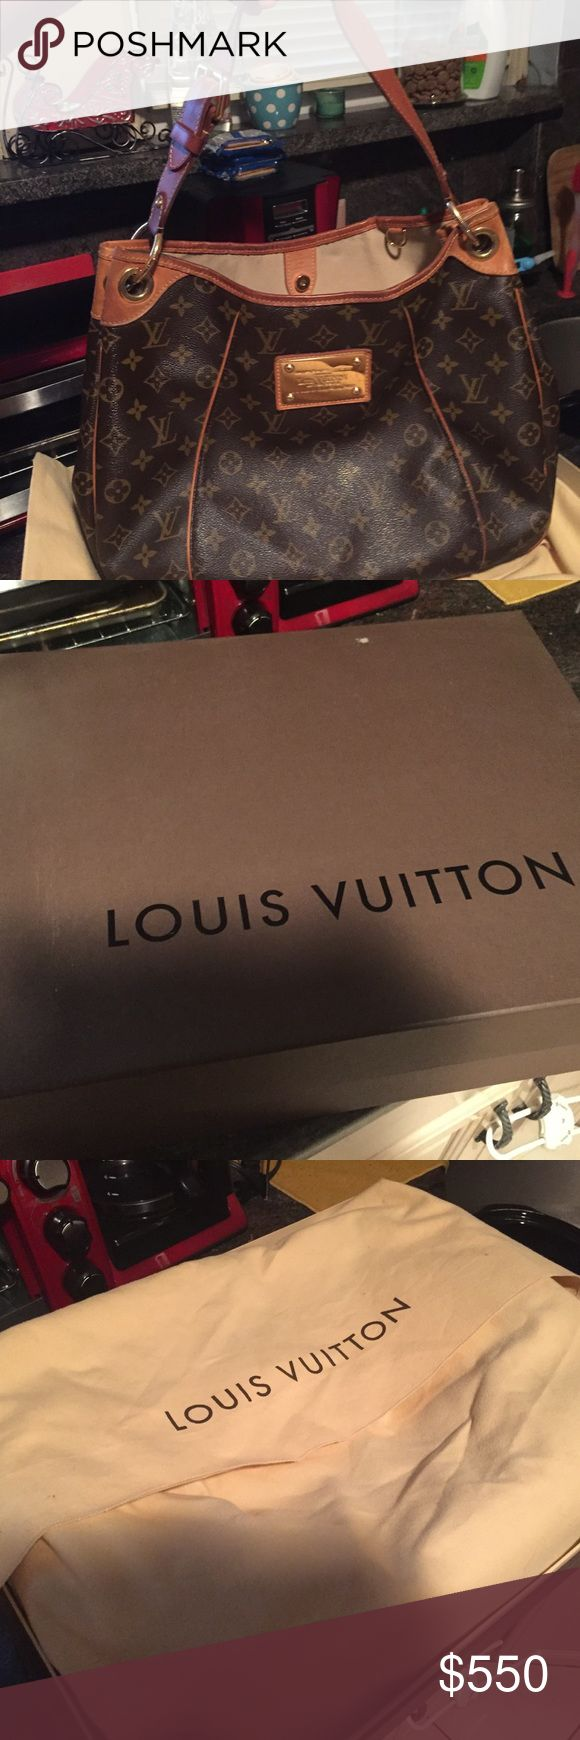 PRICE REDUCED! AUTHENTIC Louis Vuitton Galleria PM Louis Vuitton Galleria PM, used, good condition. Original box and dust bag included. Small tear in leather and small stain inside (see photos) Can provide additional photos if needed. Louis Vuitton Bags Shoulder Bags